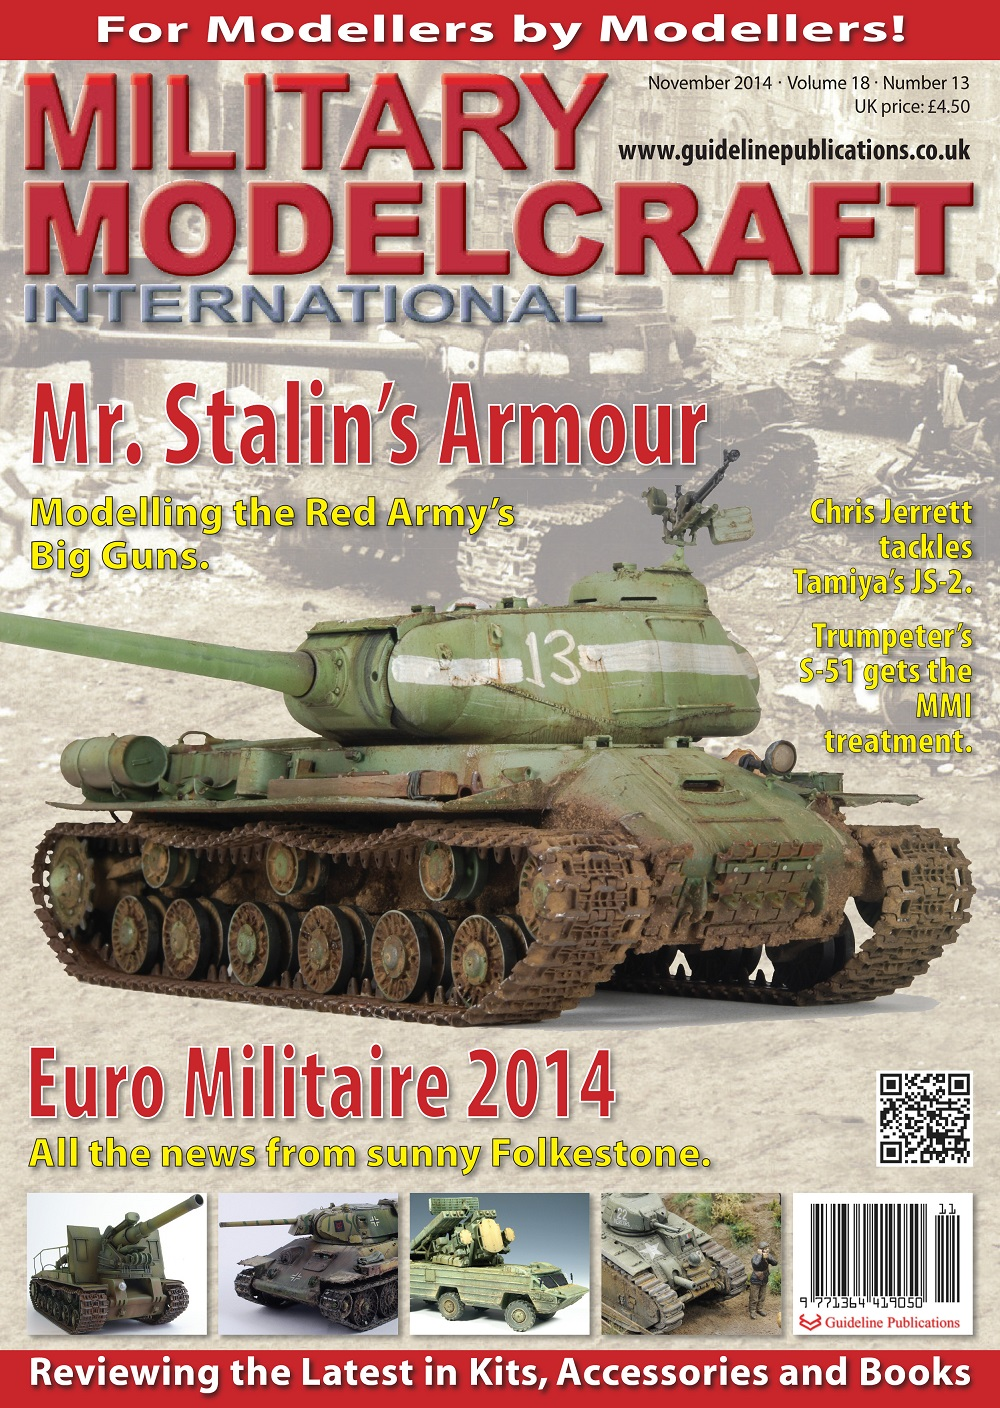 Guideline Publications Military Modelcraft November 2014 vol 18 - 13